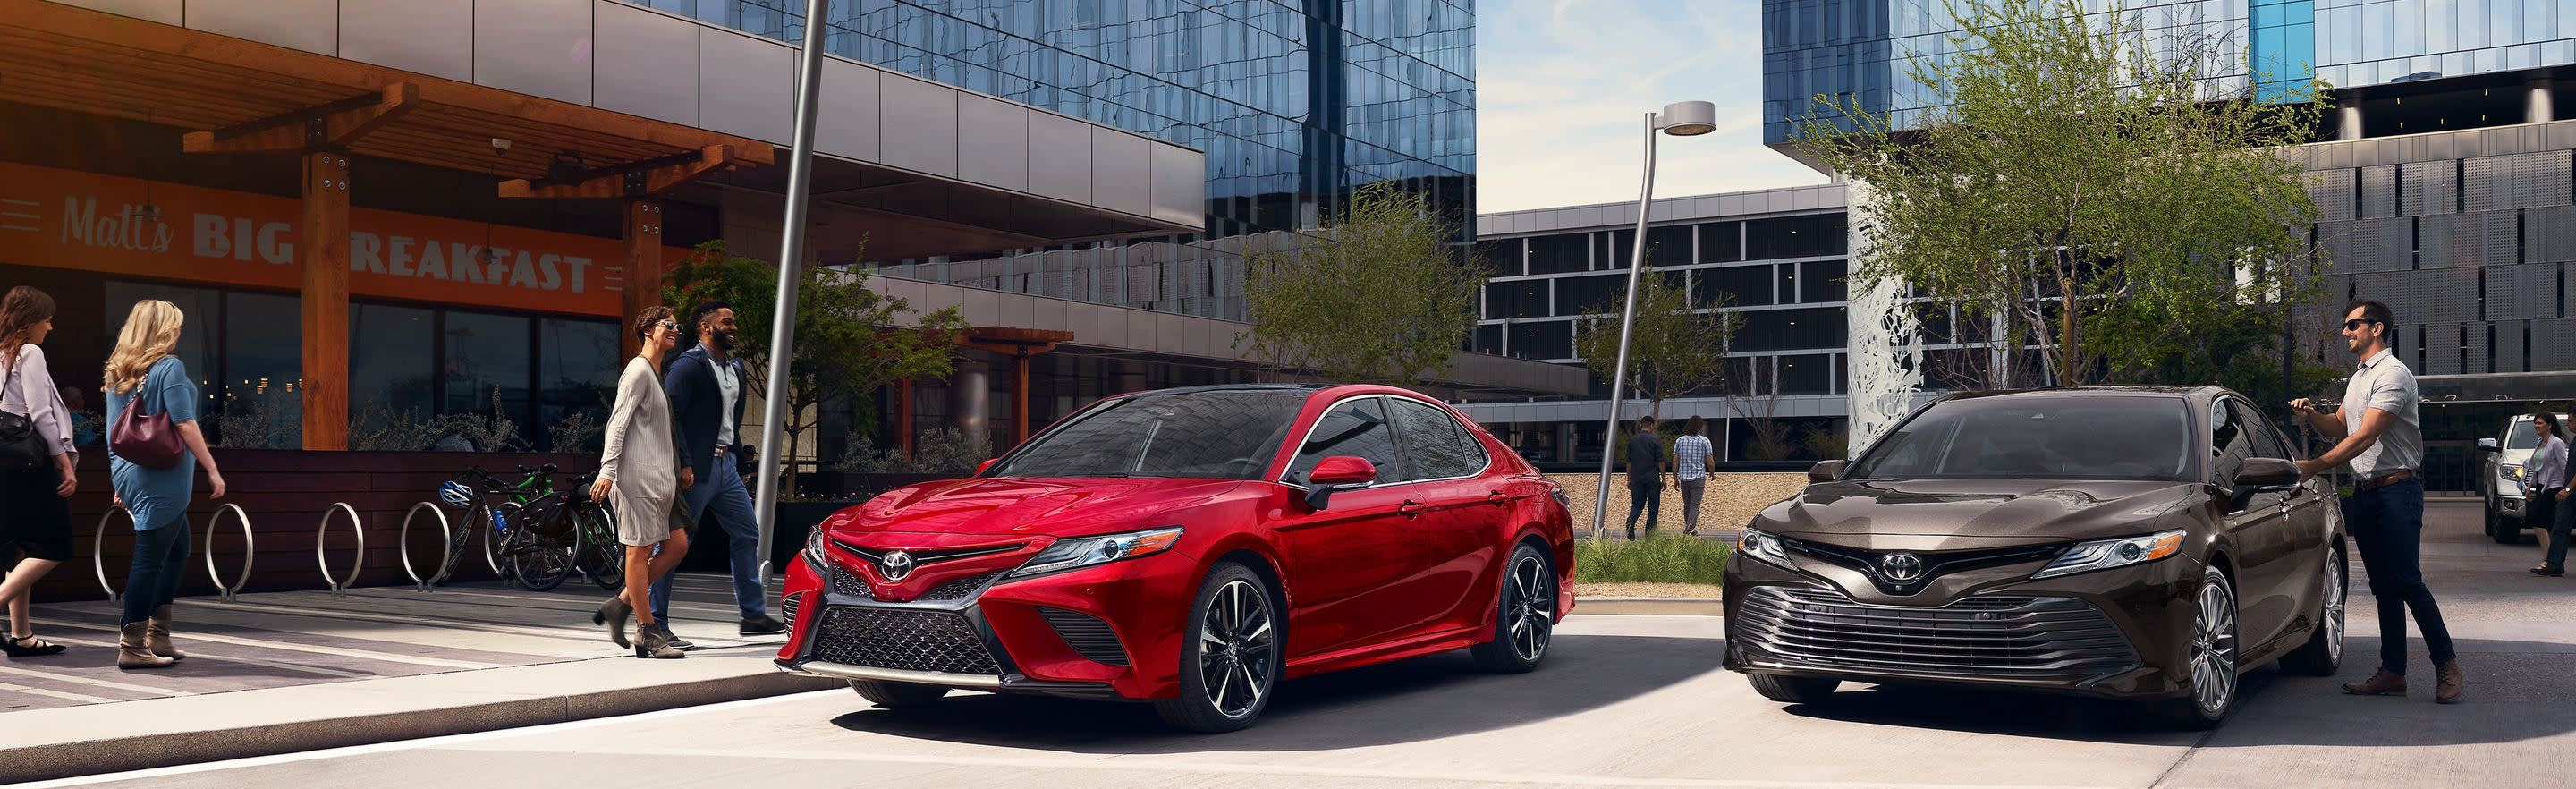 2020 Toyota Camry for Sale near Cedar Park, TX